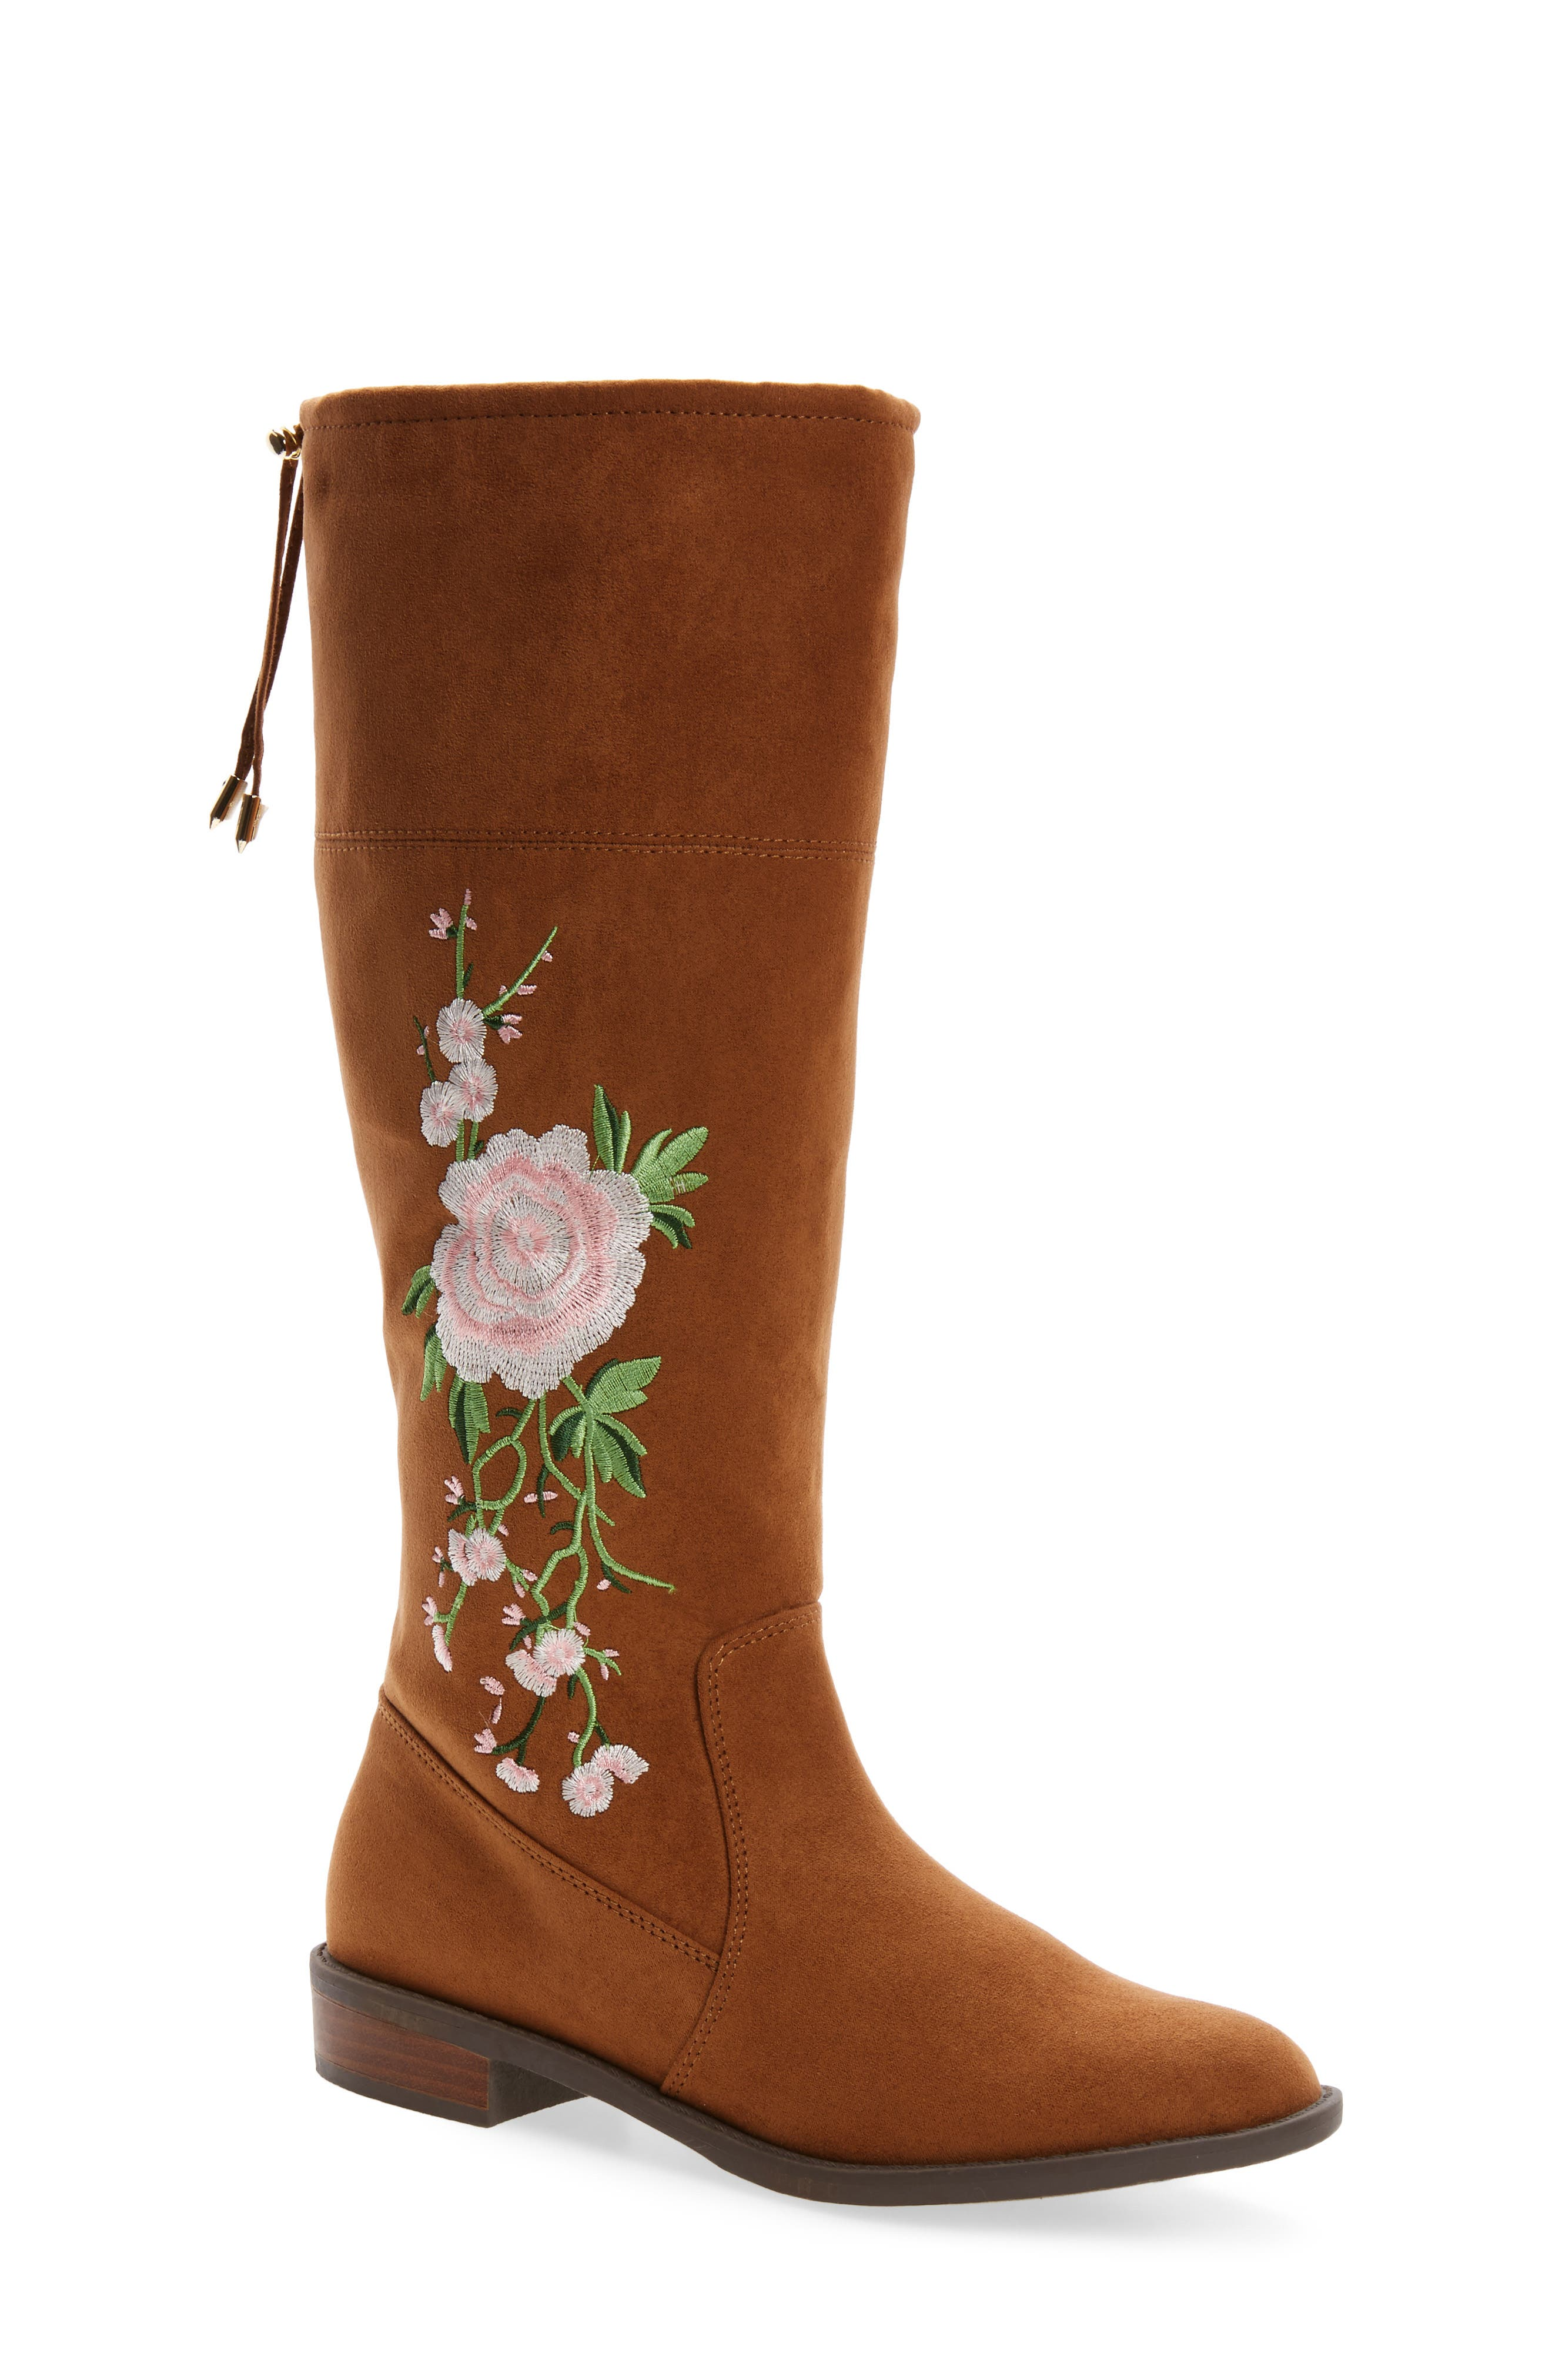 Pia Kent Embroidered Boot,                             Main thumbnail 1, color,                             Saddle Faux Suede